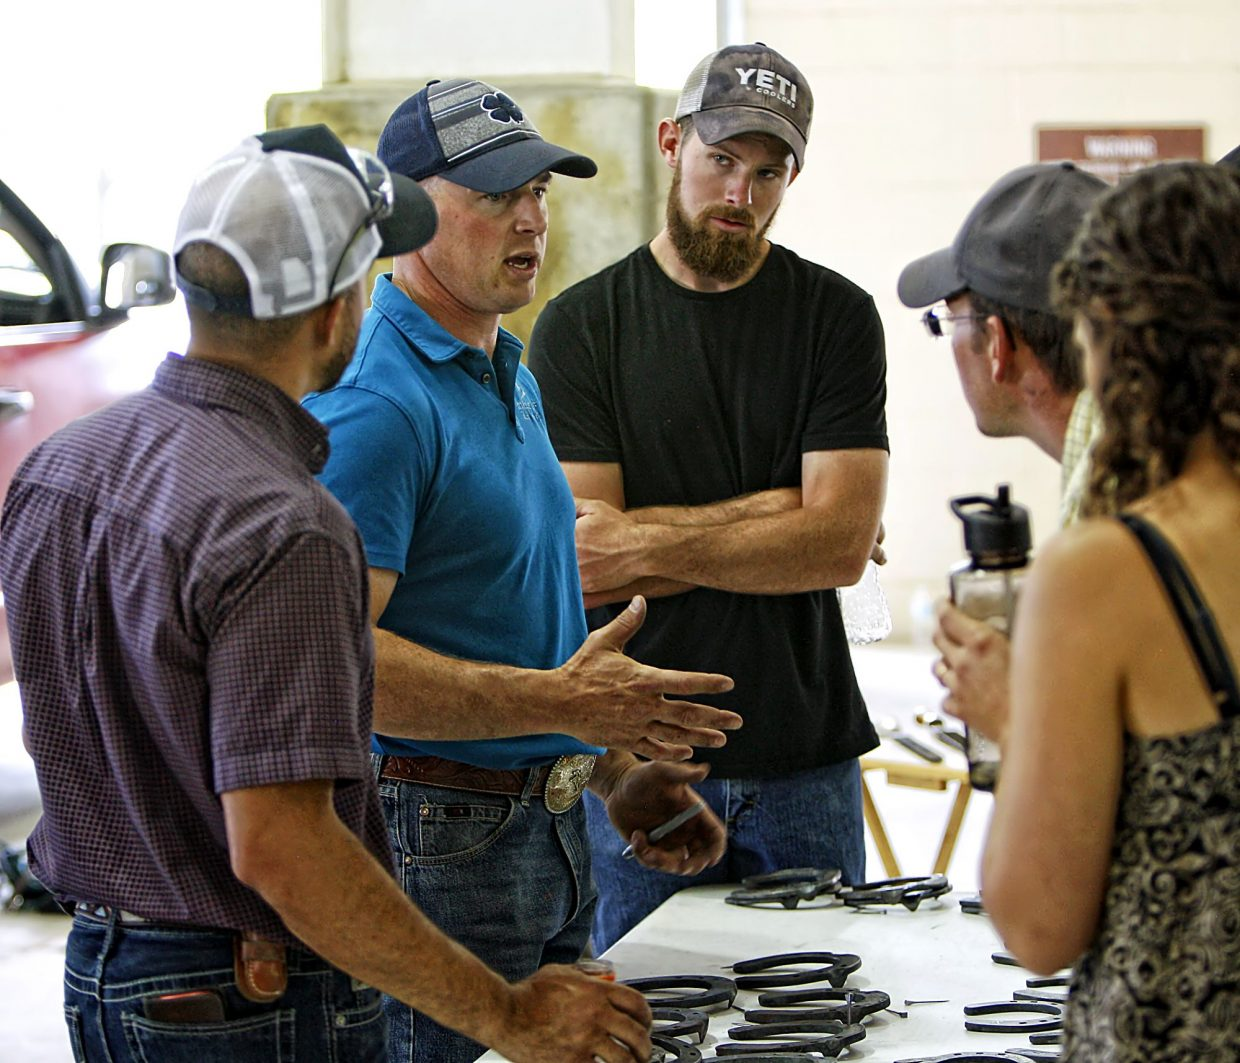 Kyd Kelley from Three Forks, Mont., (second from left) a journeyman ferrier and a tester with the American Ferriers Association, judged the ferrier competition at the third annual Rock'n Western Rendezvous in Loveland, Colo., (June 02-03, 2017). In this photo, Kelley discusses the work turned in by some of the 16 ferrers during the competition.